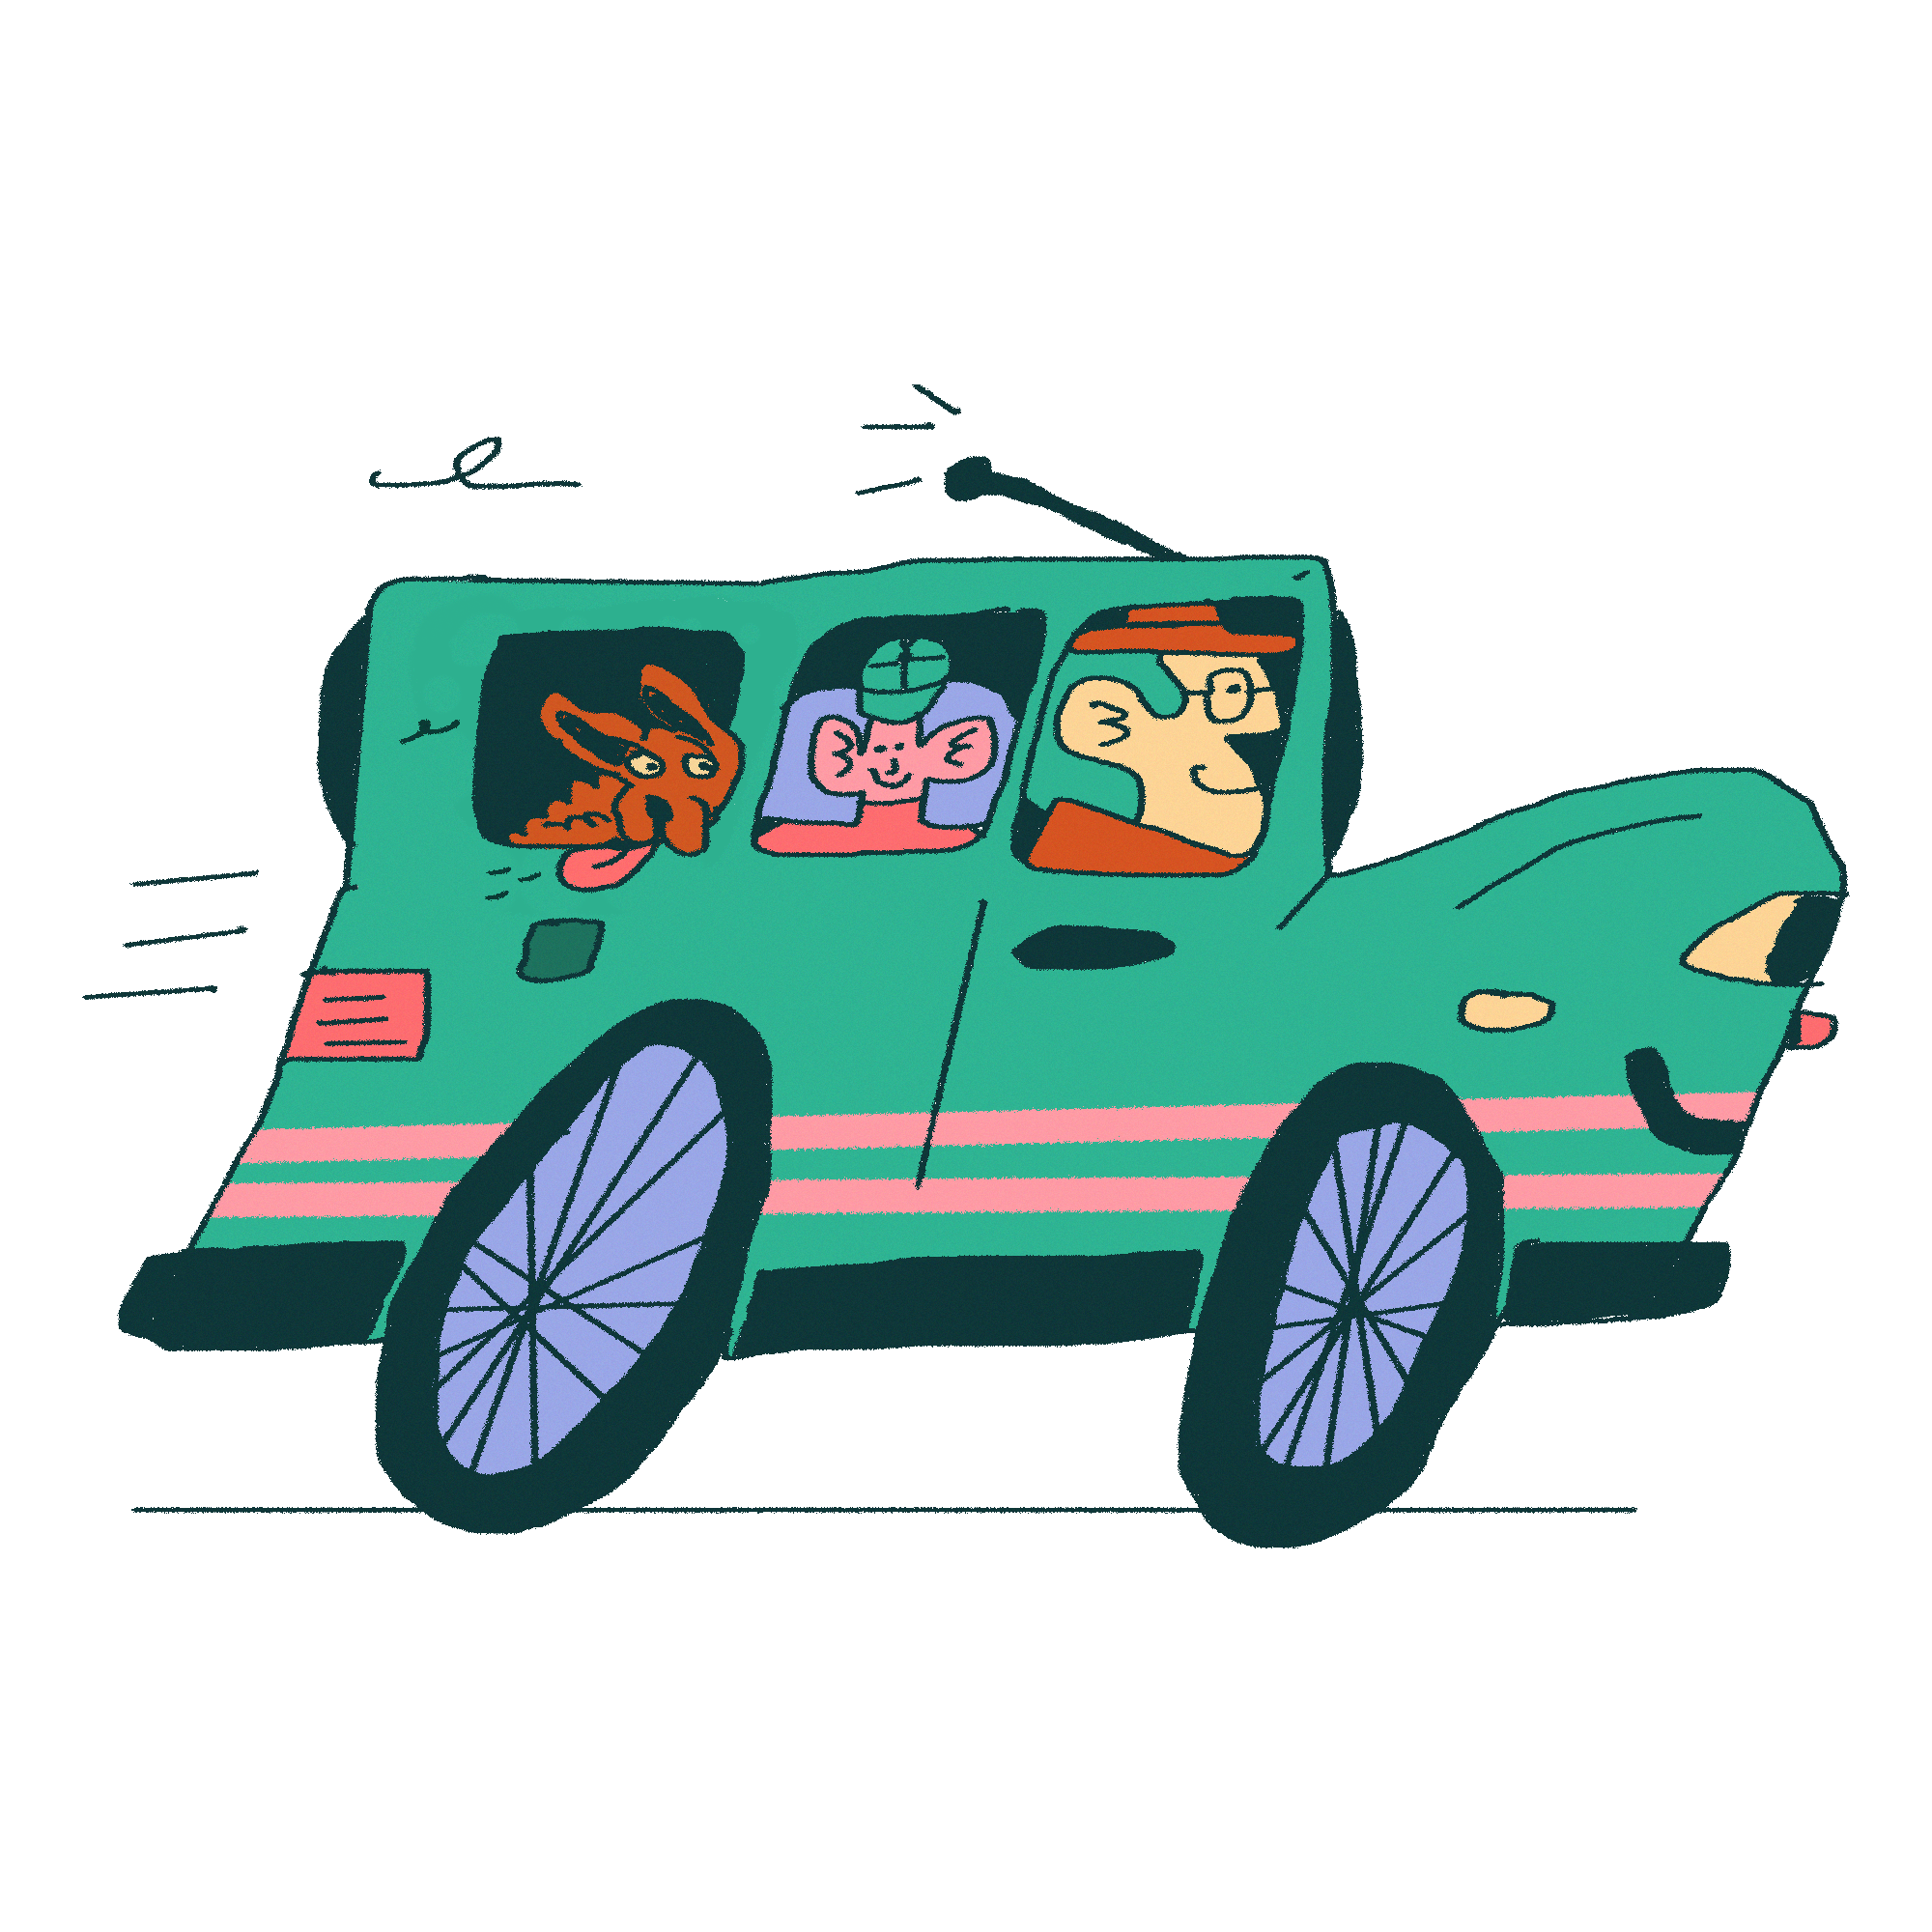 Illustration of a smiling green car